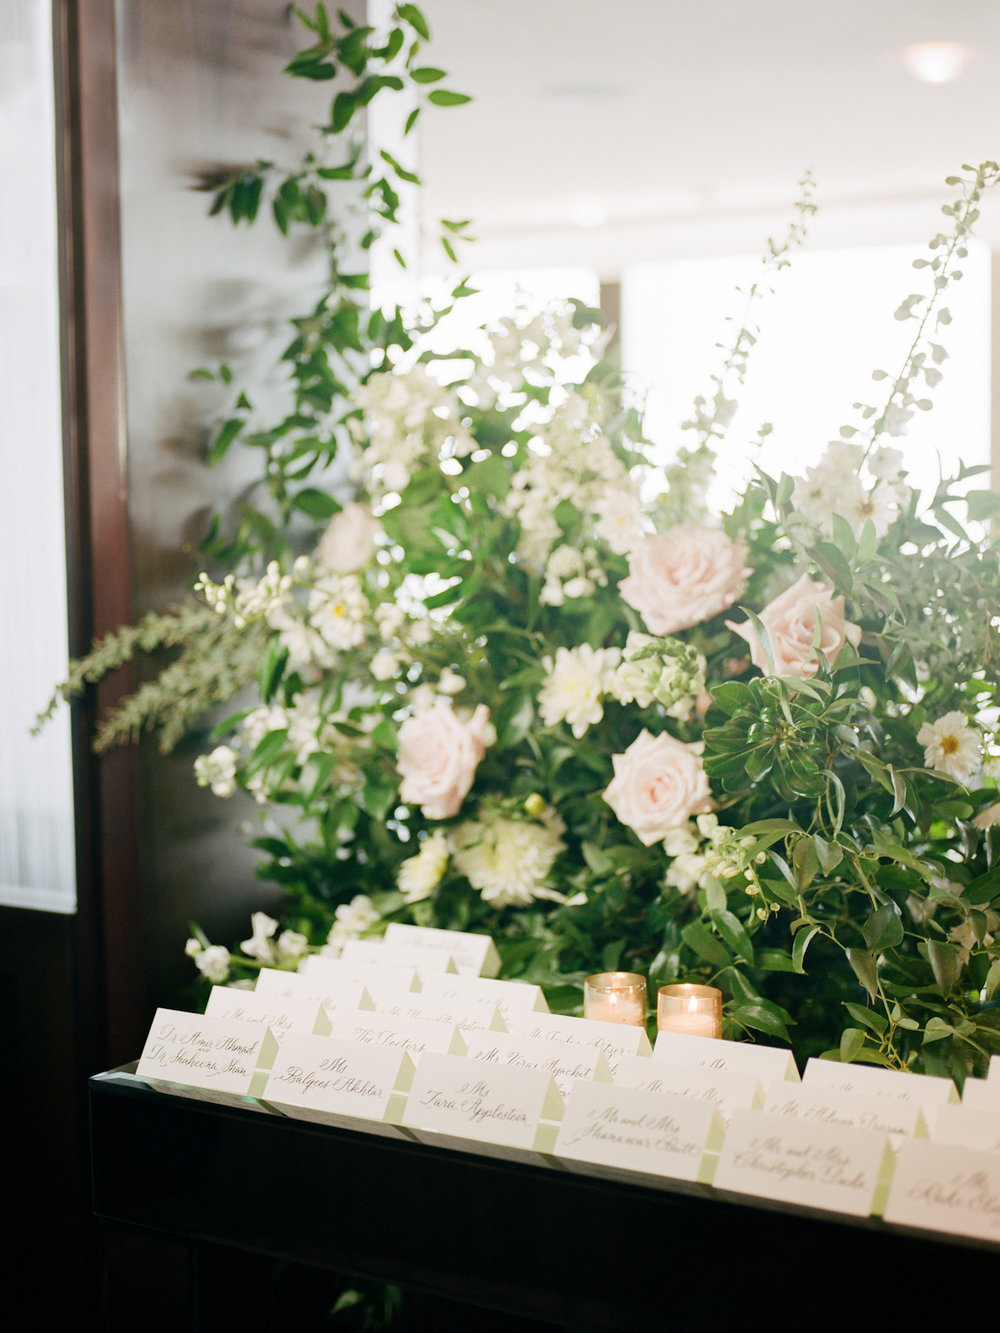 Rainbow Room Wedding, planner Ang Weddings and Events, photography Heather Waraksa, florals Poppies and Posies, calligraphy Mary Ellen